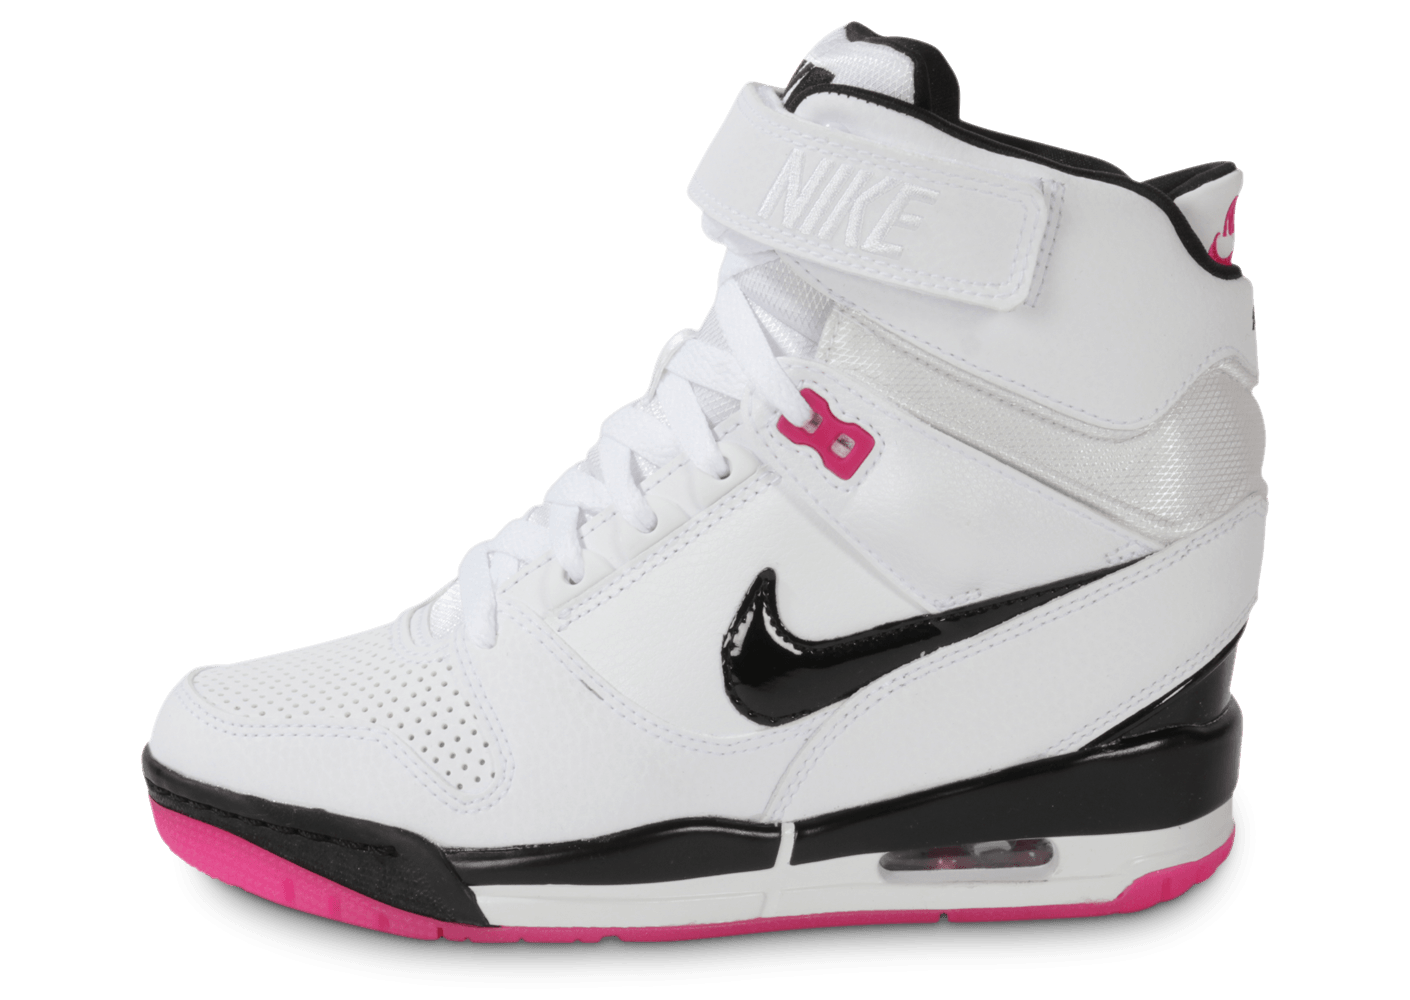 Blanche Blanche Compensee Blanche Nike Nike Femme Compensee Nike Nike Femme Compensee Femme Compensee CedoBxrW